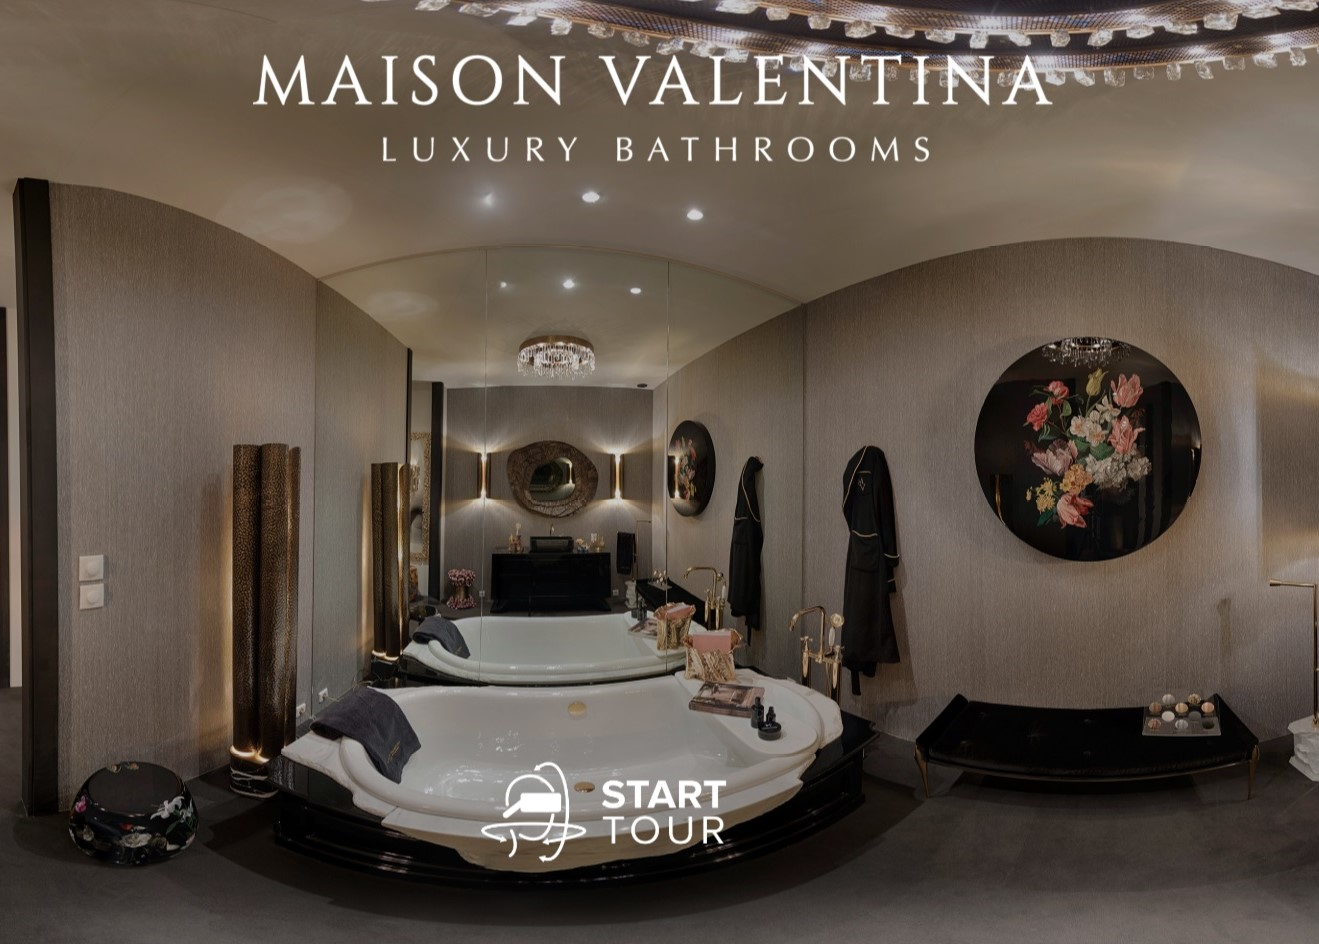 Maison Et Objet 2020: Luxury Stands' Virtual Tour  maison et objet 2020 Maison Et Objet 2020: Luxury Stands' Virtual Tour  maison objet 2020 luxury stands virtual tour 5